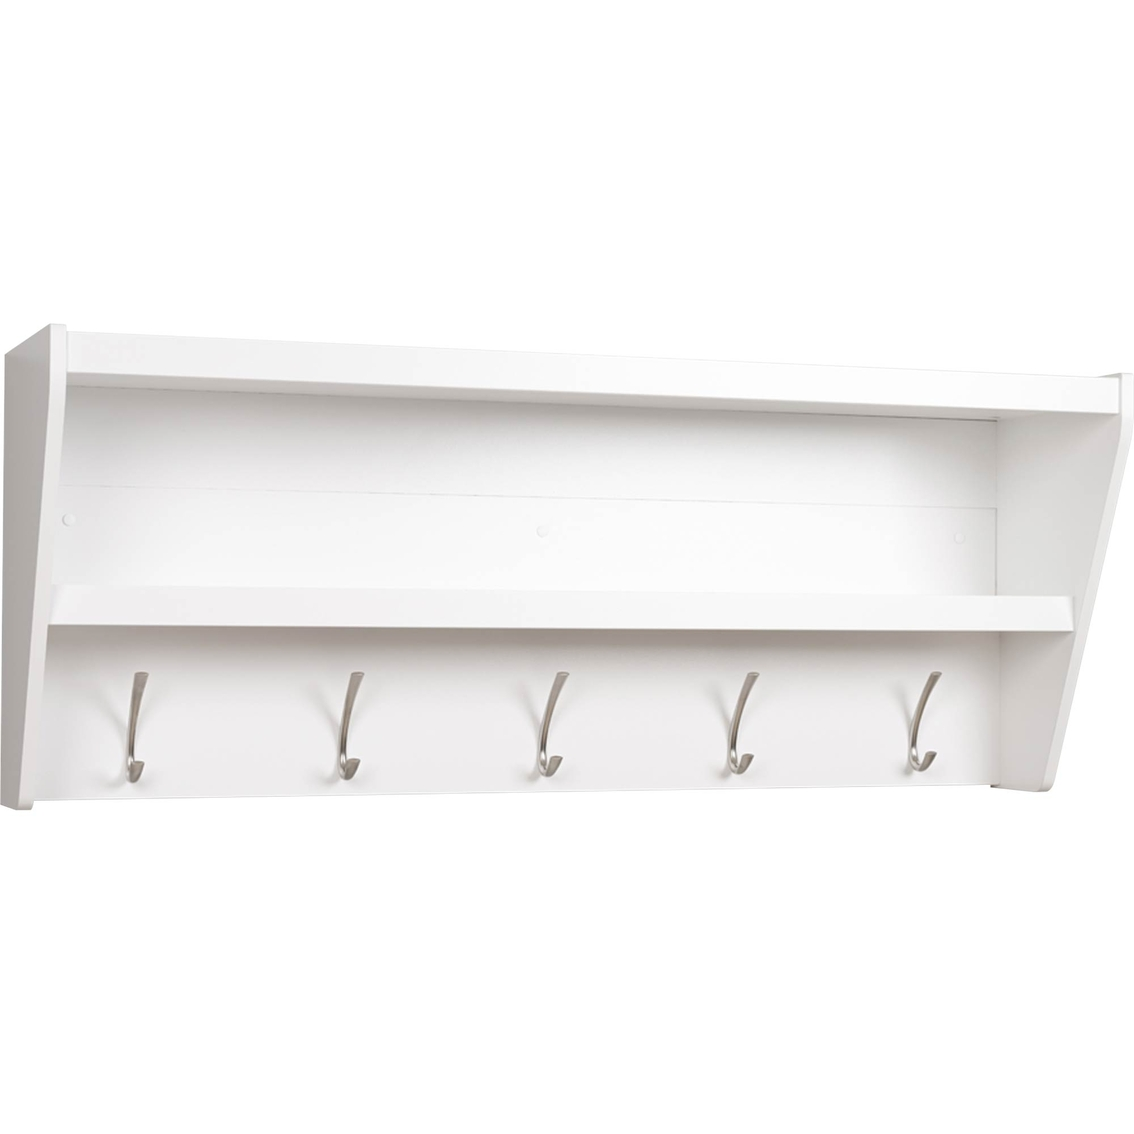 prepac floating entryway shelf and coat rack entry furniture with bench white storage racks shelves work shelving ideas wall mounted book ledge garage organization bins coffee